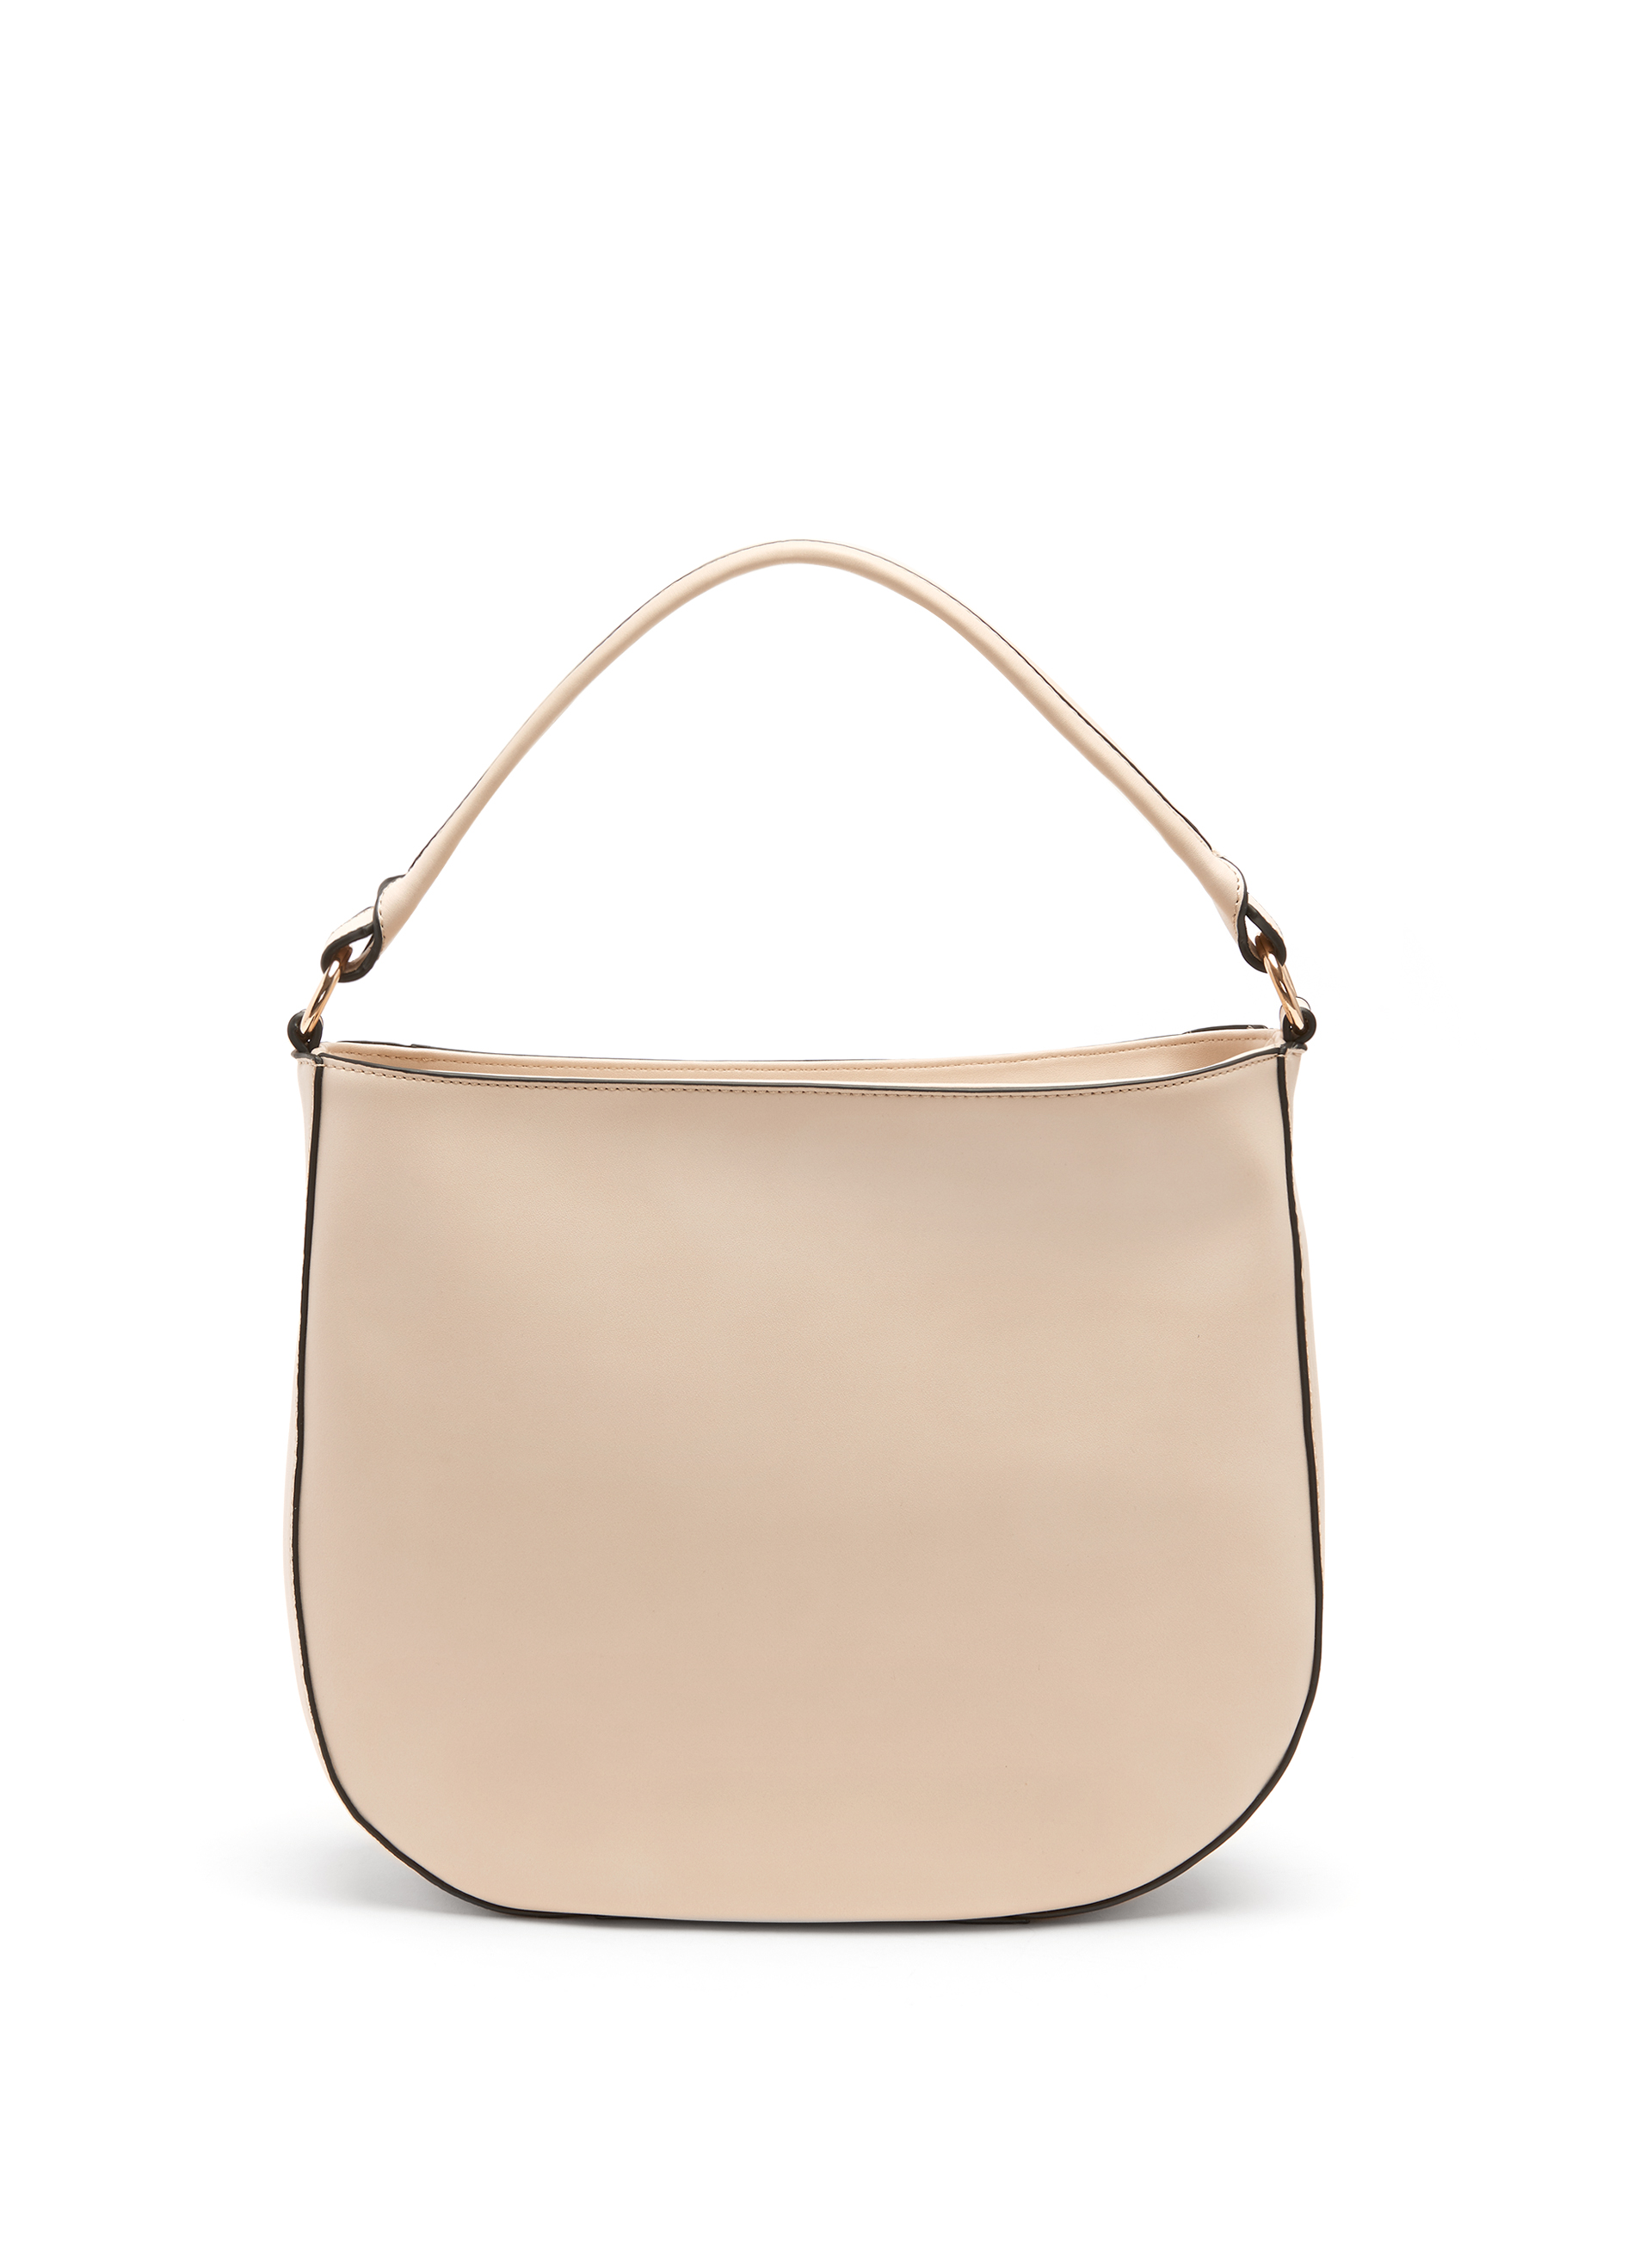 Whipstitch Trim Hobo Bag, Off White, hi-res